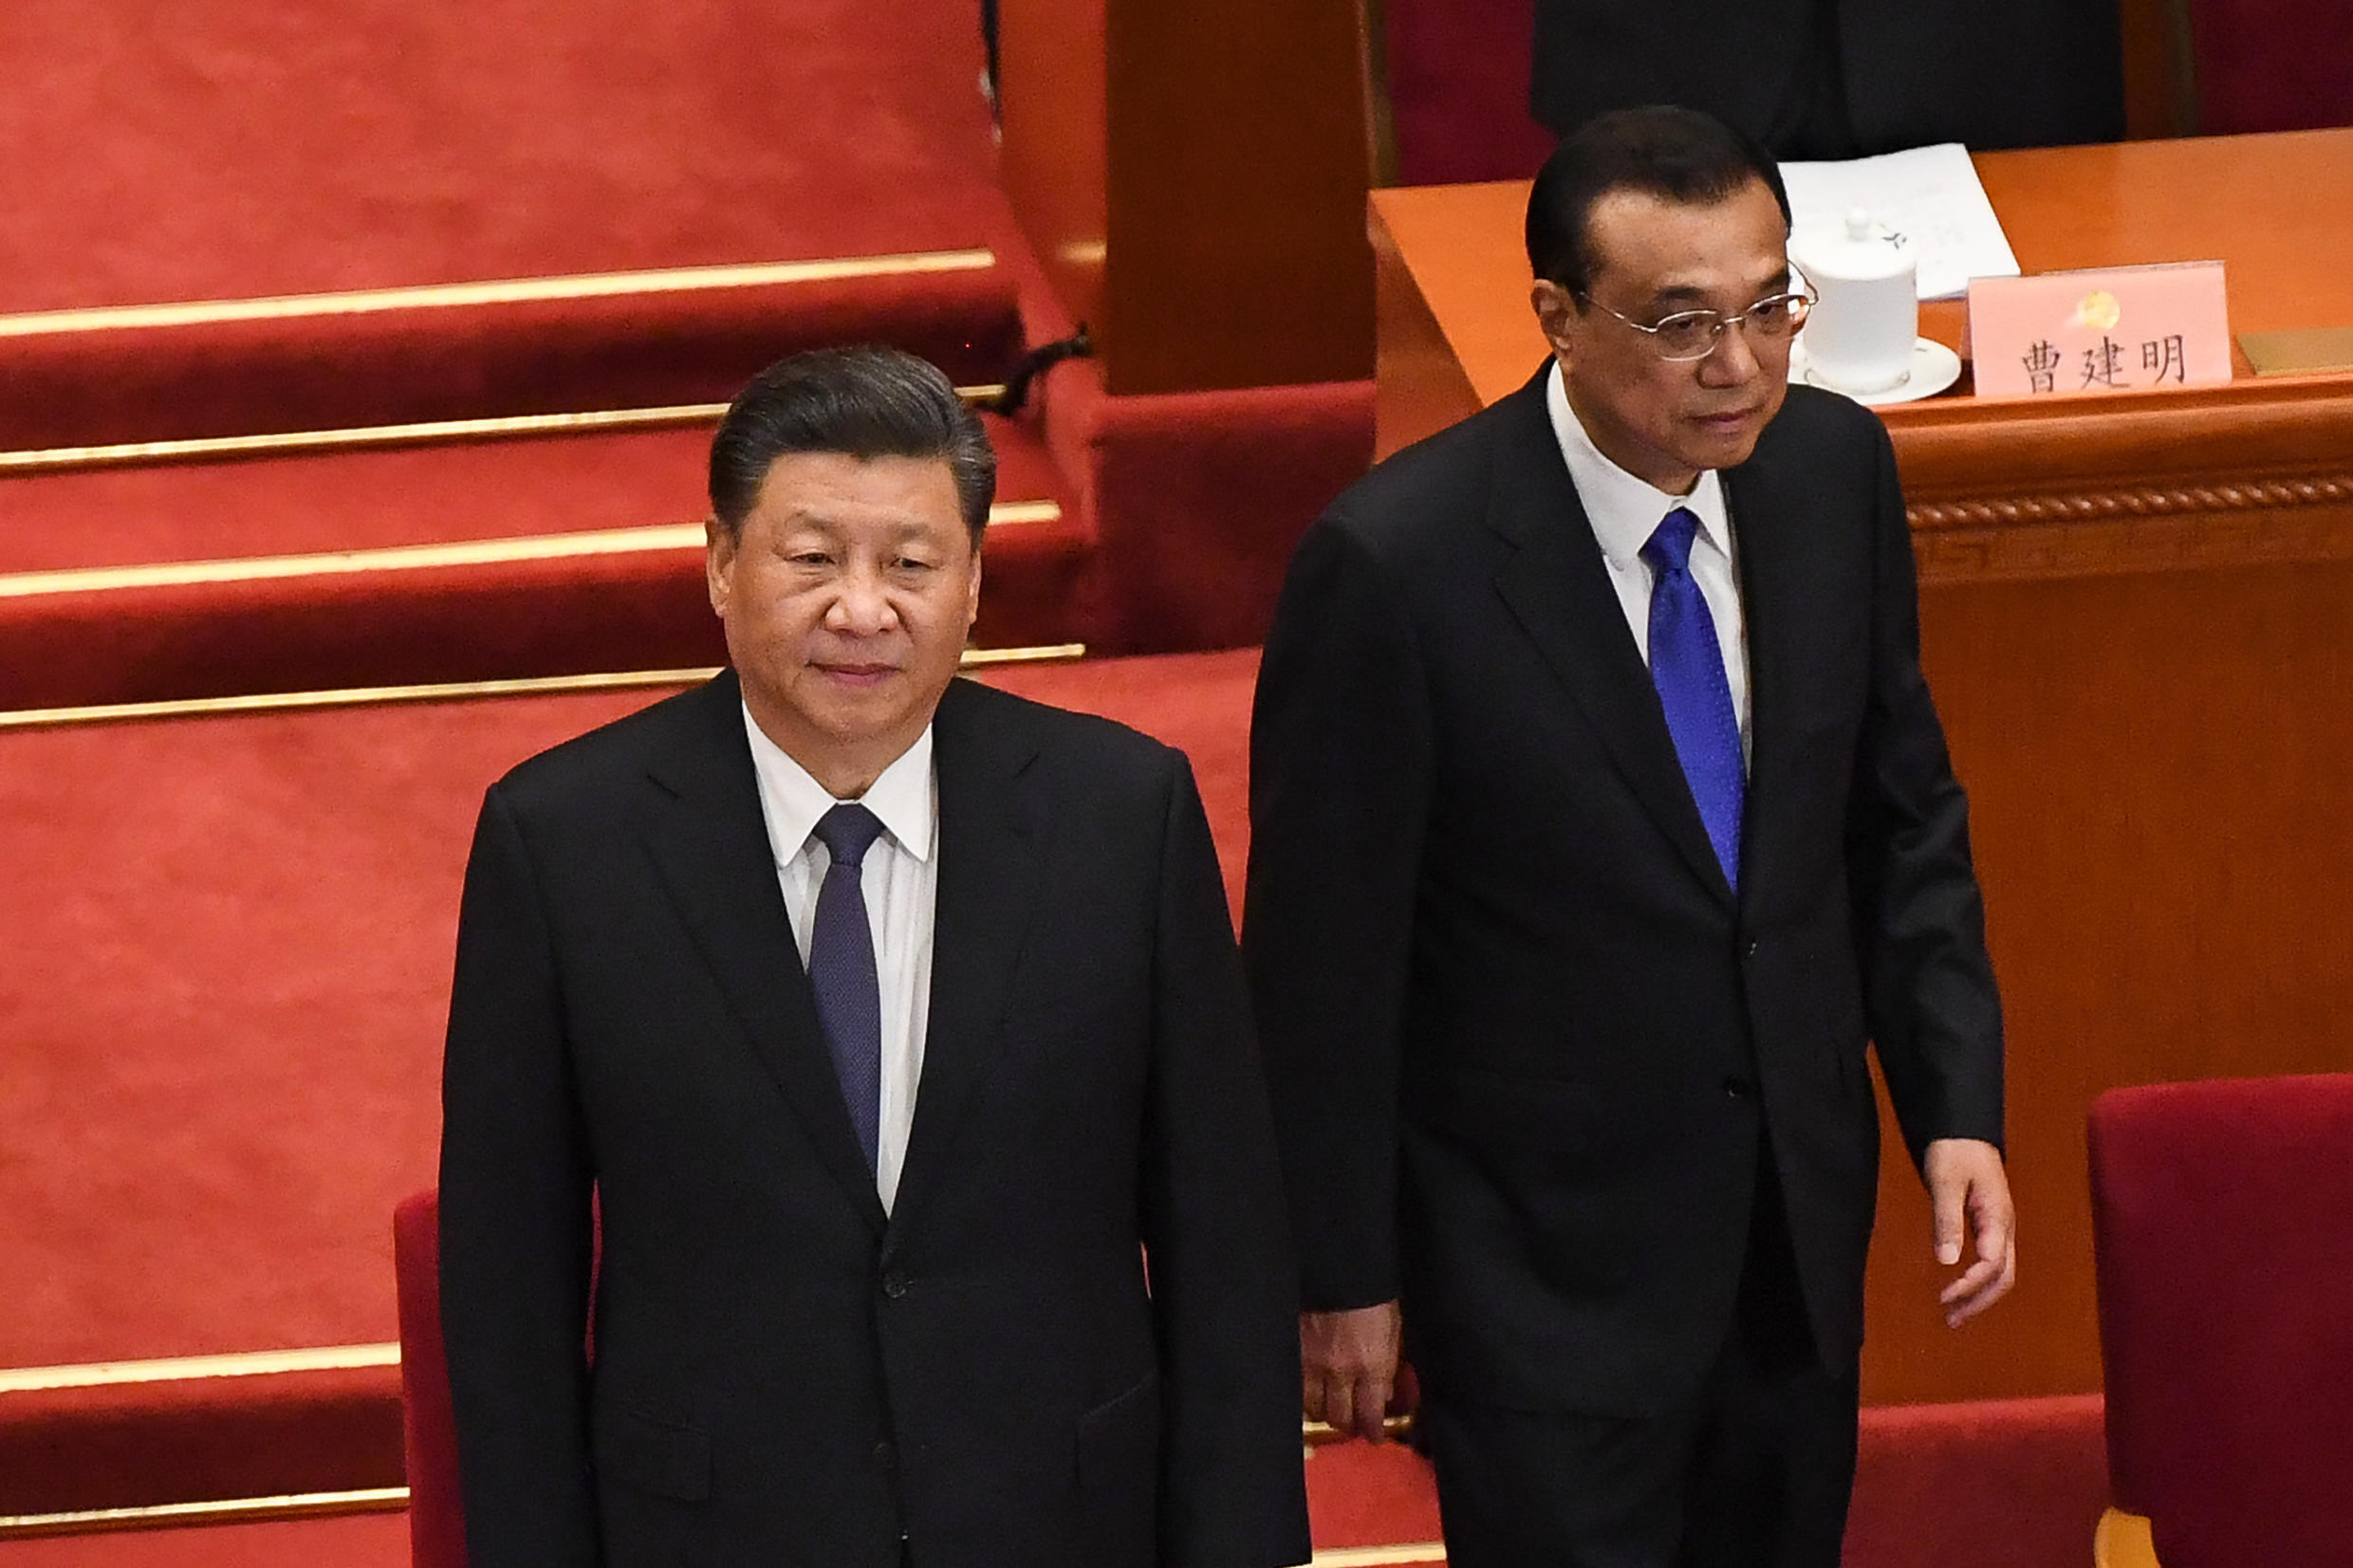 Chinese President Xi Jinping (L) and Premier Li Keqiang (R) arrive for the opening session of the Chinese People's Political Consultative Conference (CPPCC) at the Great Hall of the People in Beijing on May 21, 2020